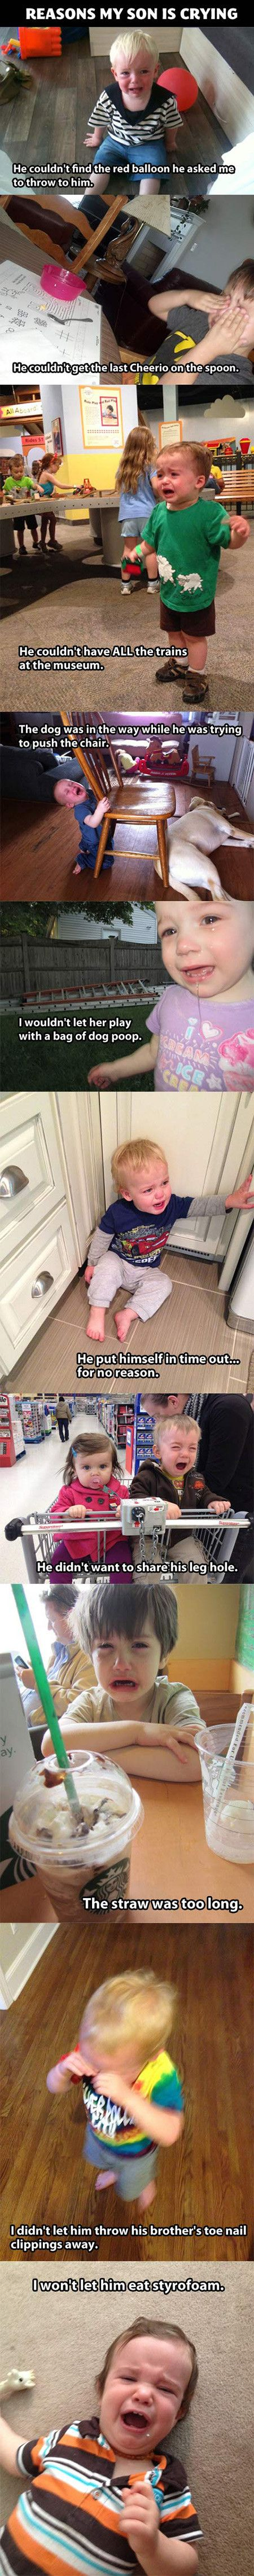 Funny reasons showing why some kids are crying